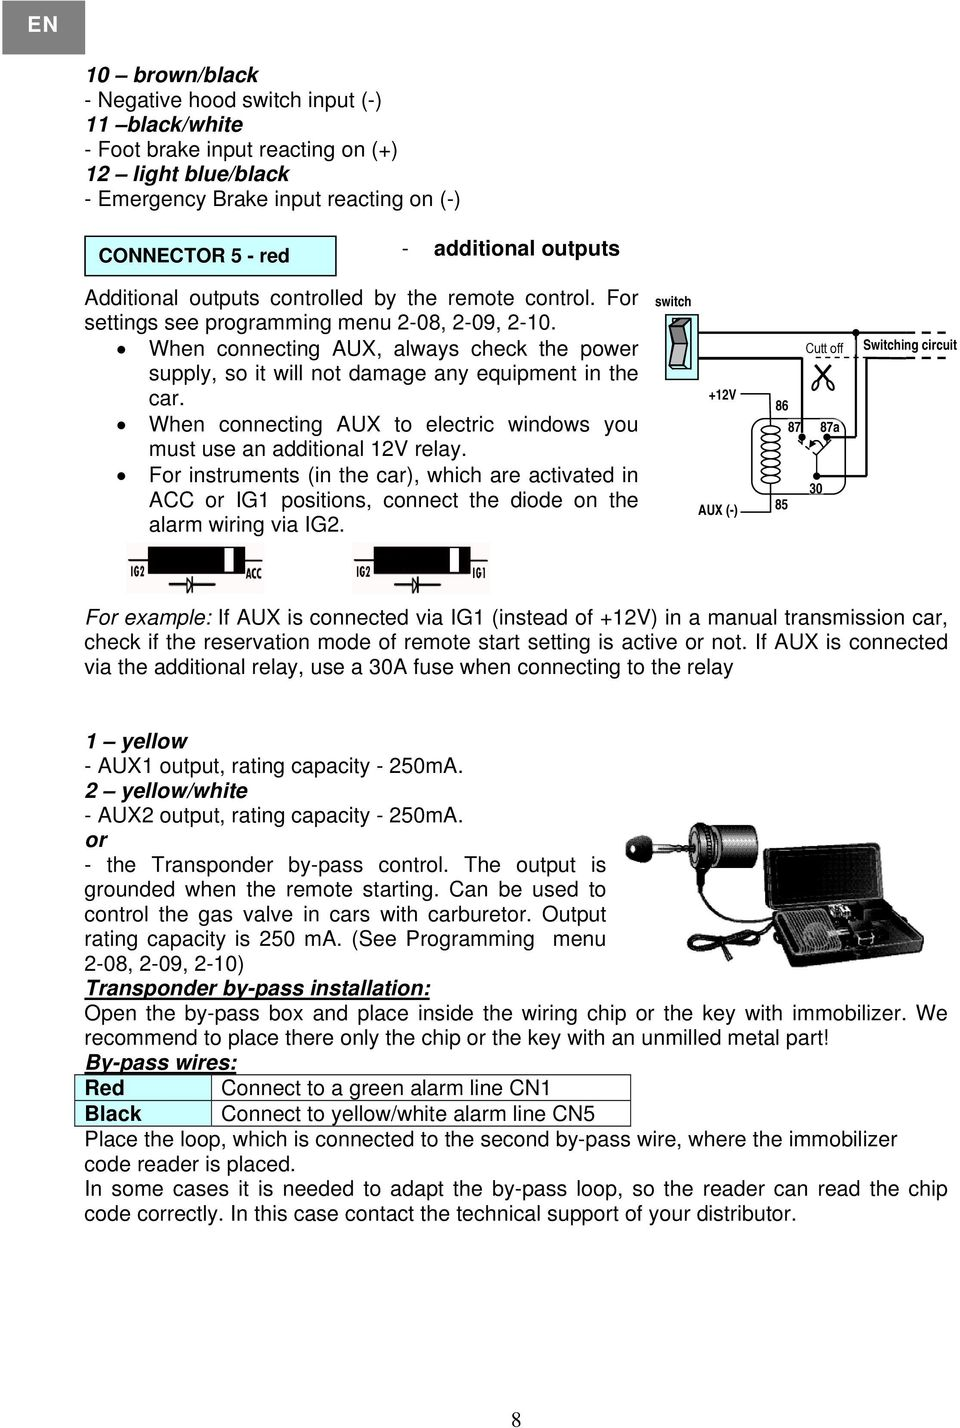 page_8 ca code alarm 1151 wiring diagrams gandul 45 77 79 119 aqualarm wiring diagram at n-0.co